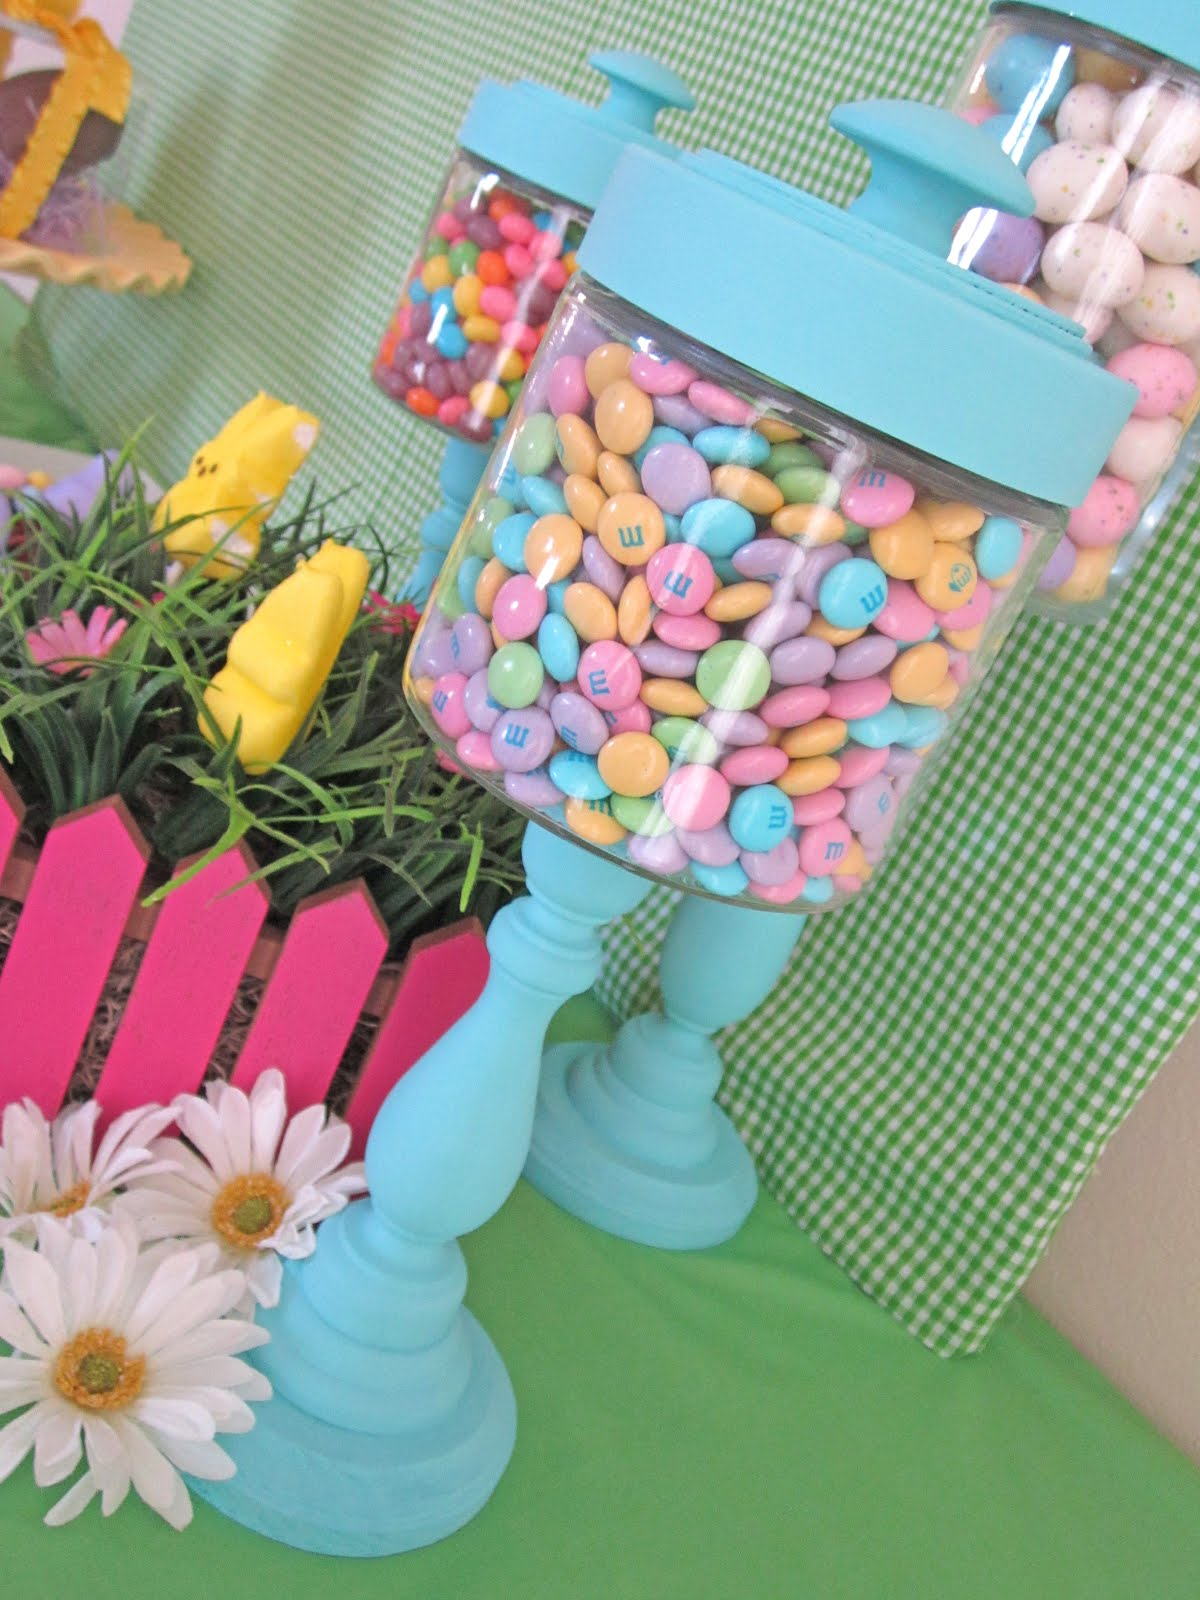 Sweeten Your Day Events Diy Candlestick Jars